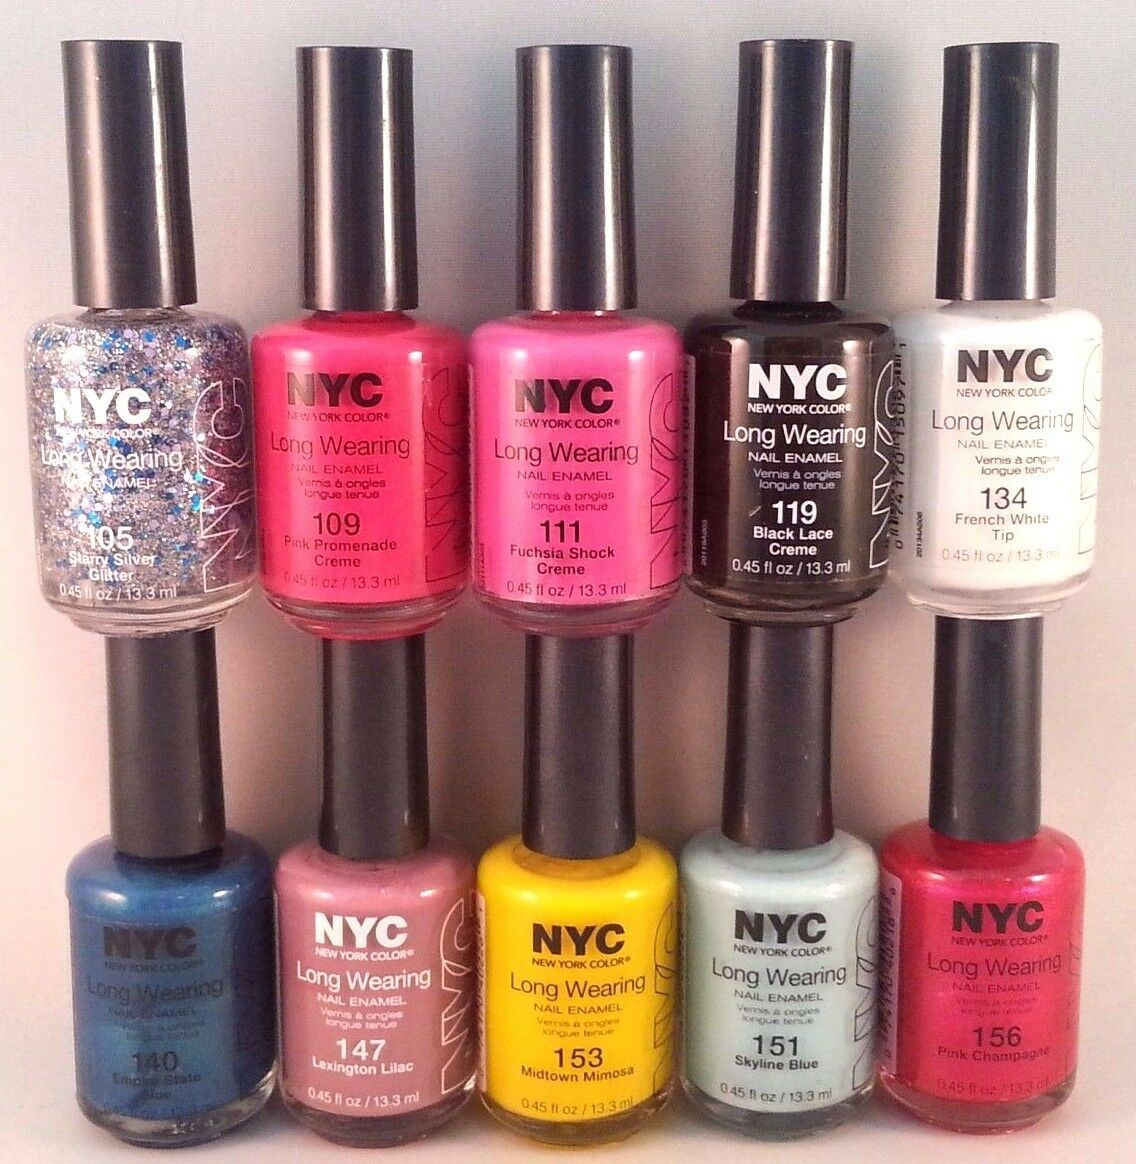 Nyc New York Color Long Wearing Nail Enamel 2 Get 1 Free Add 3